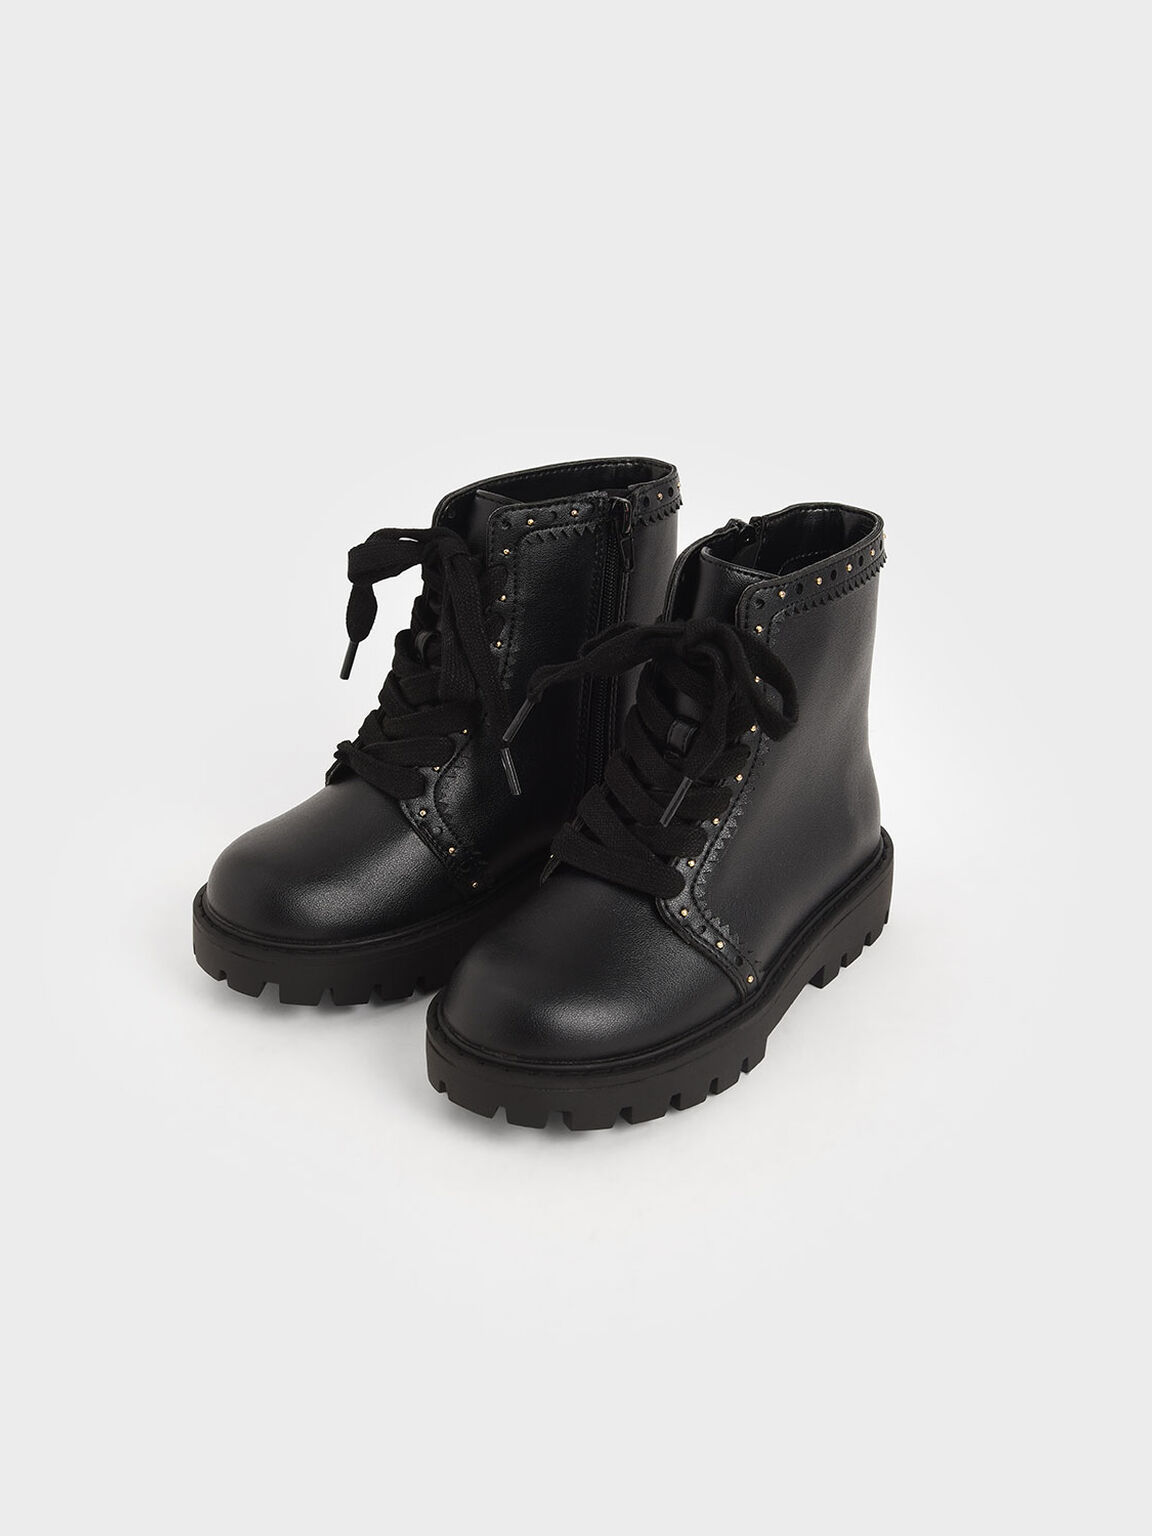 Girls' Studded Lace-Up Ankle Boots, Black, hi-res